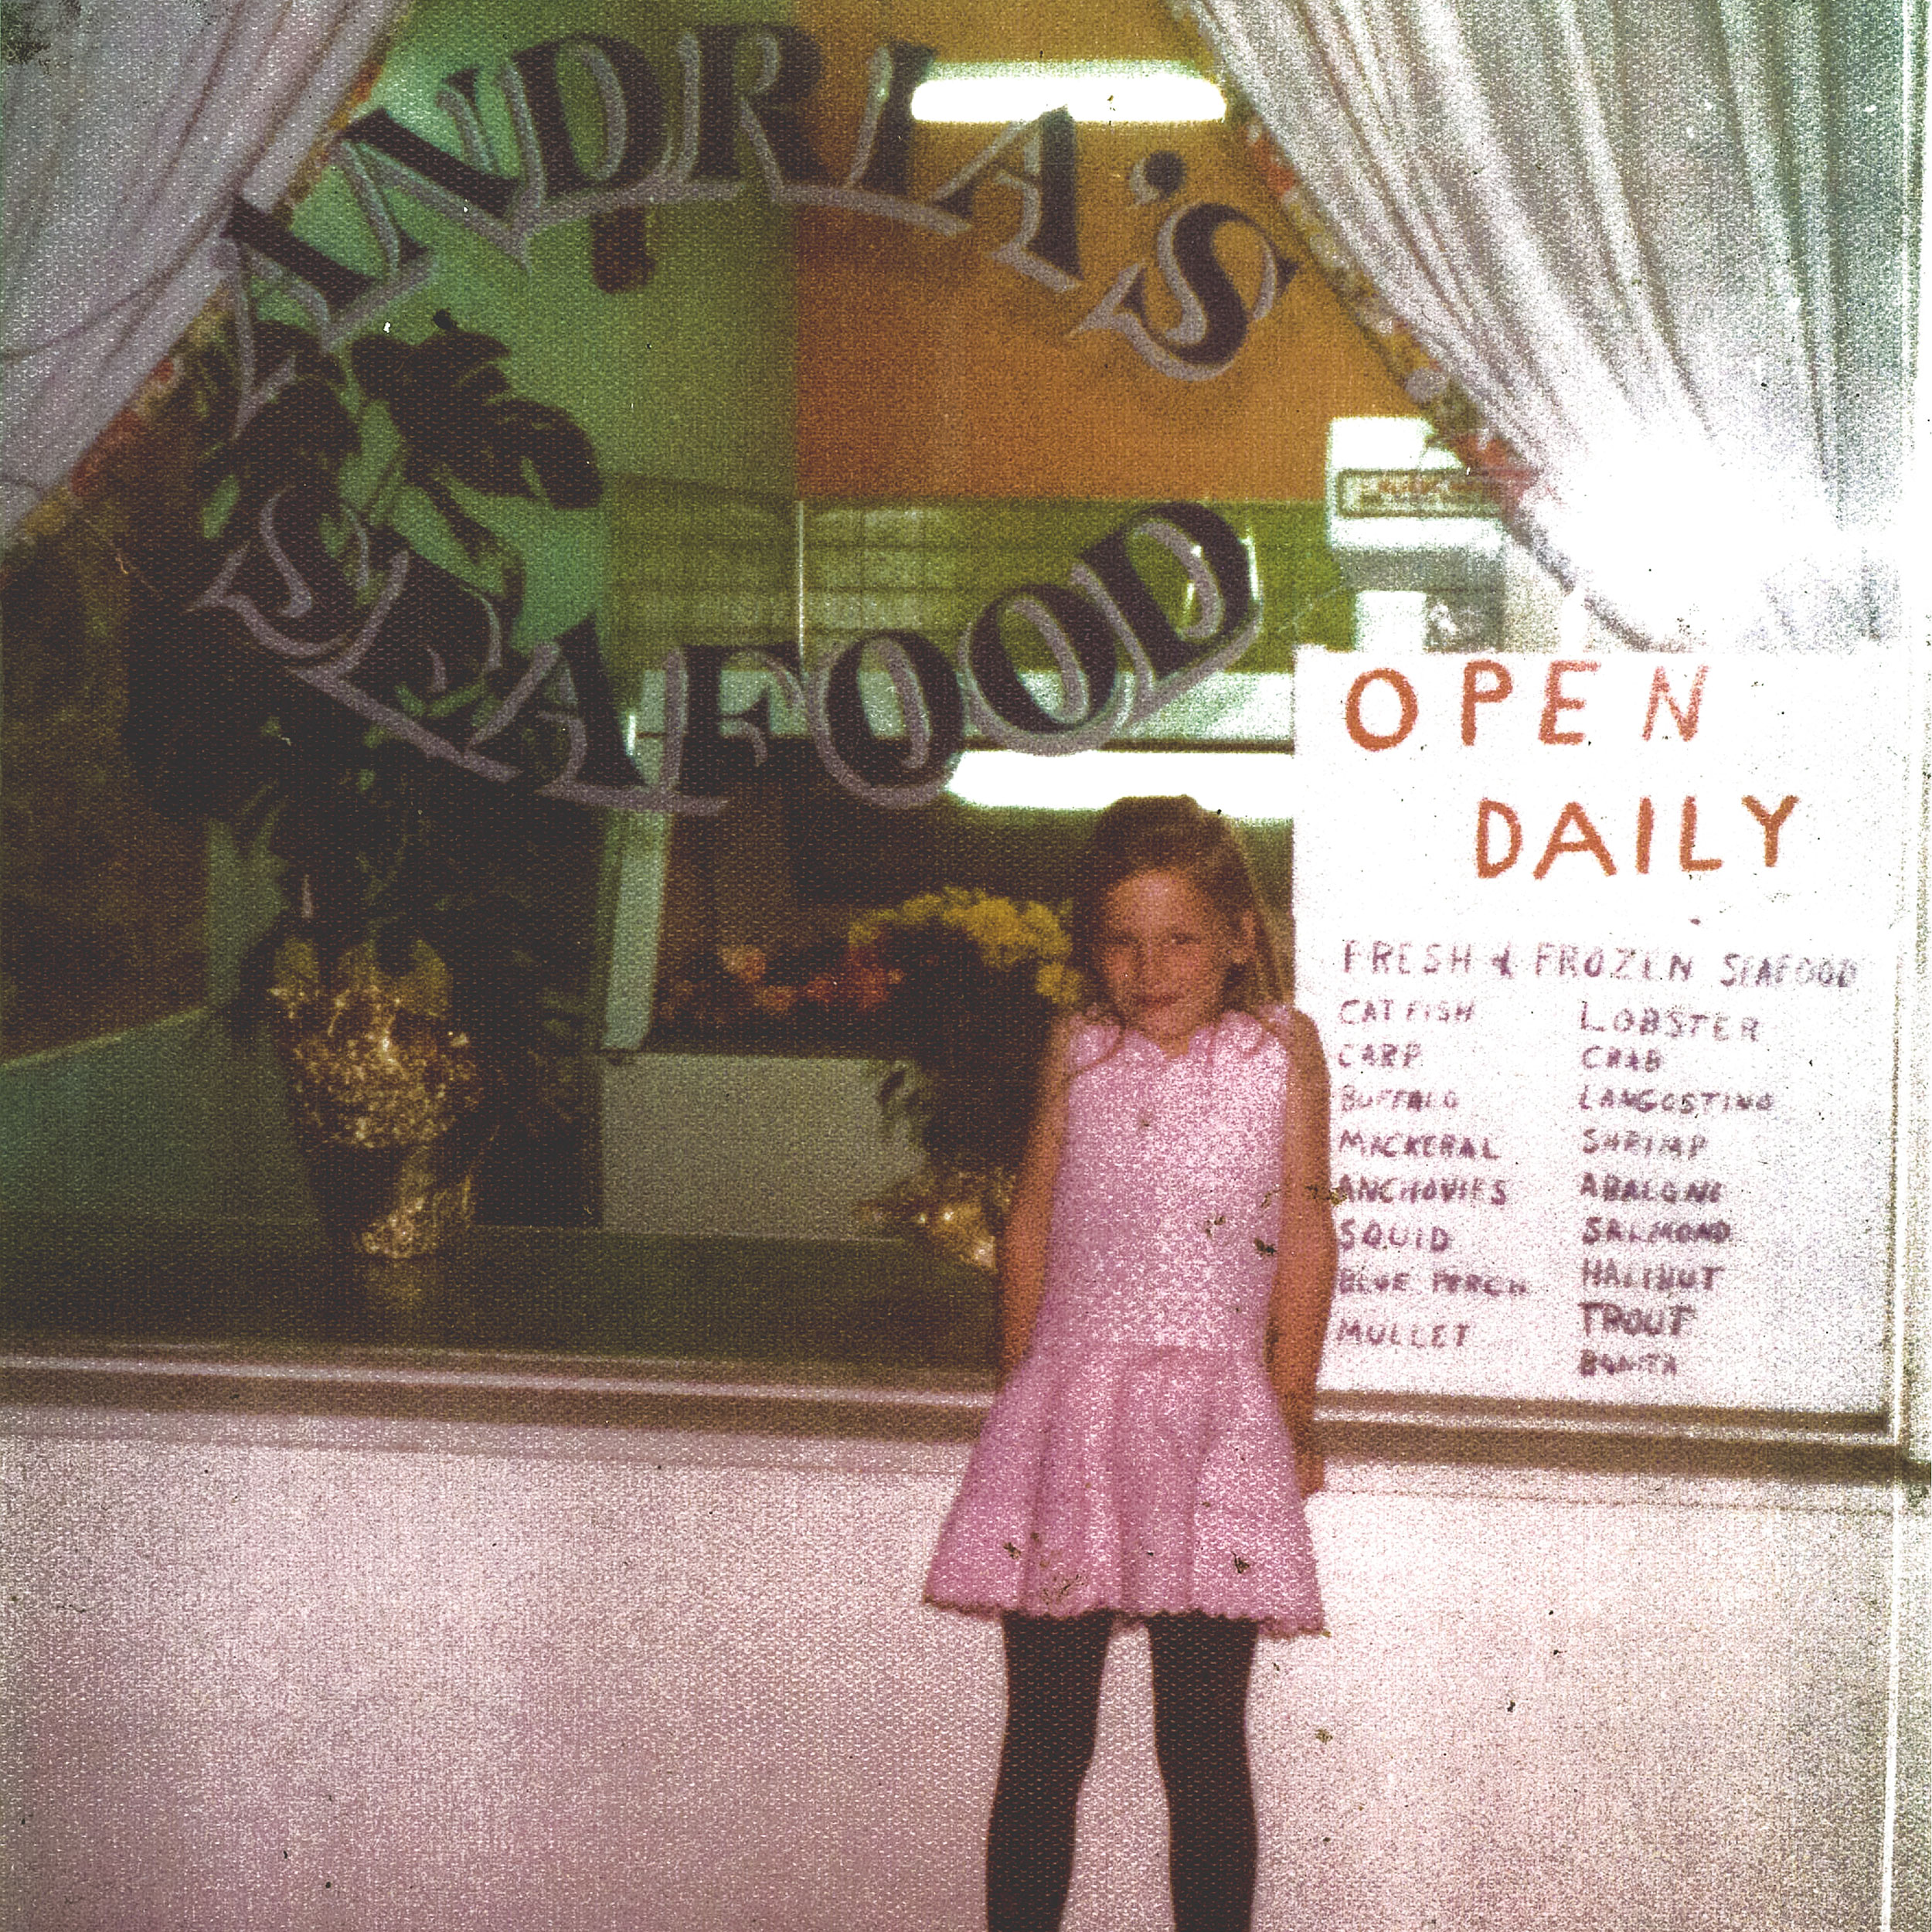 Andria Wagner as a child in front of the original Andria's Seafood